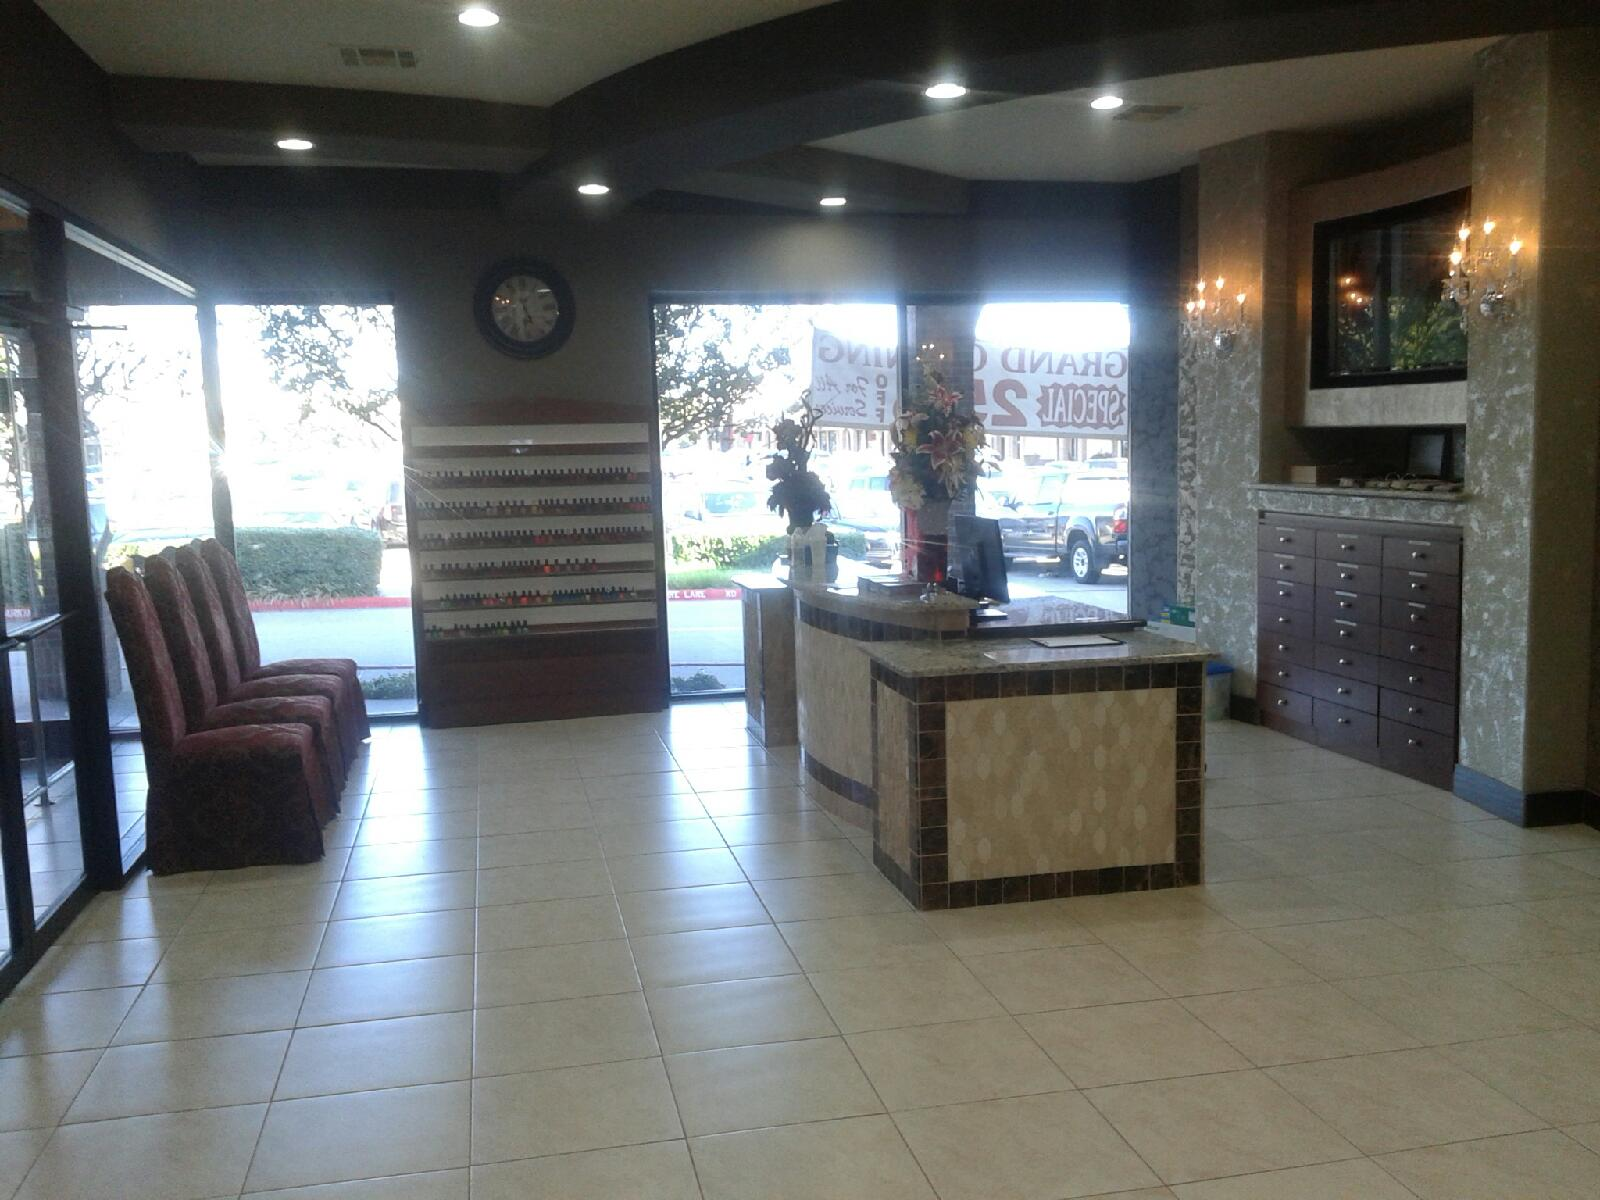 Nail salon Fort Worth - Nail salon 76132 - European Nail Spa